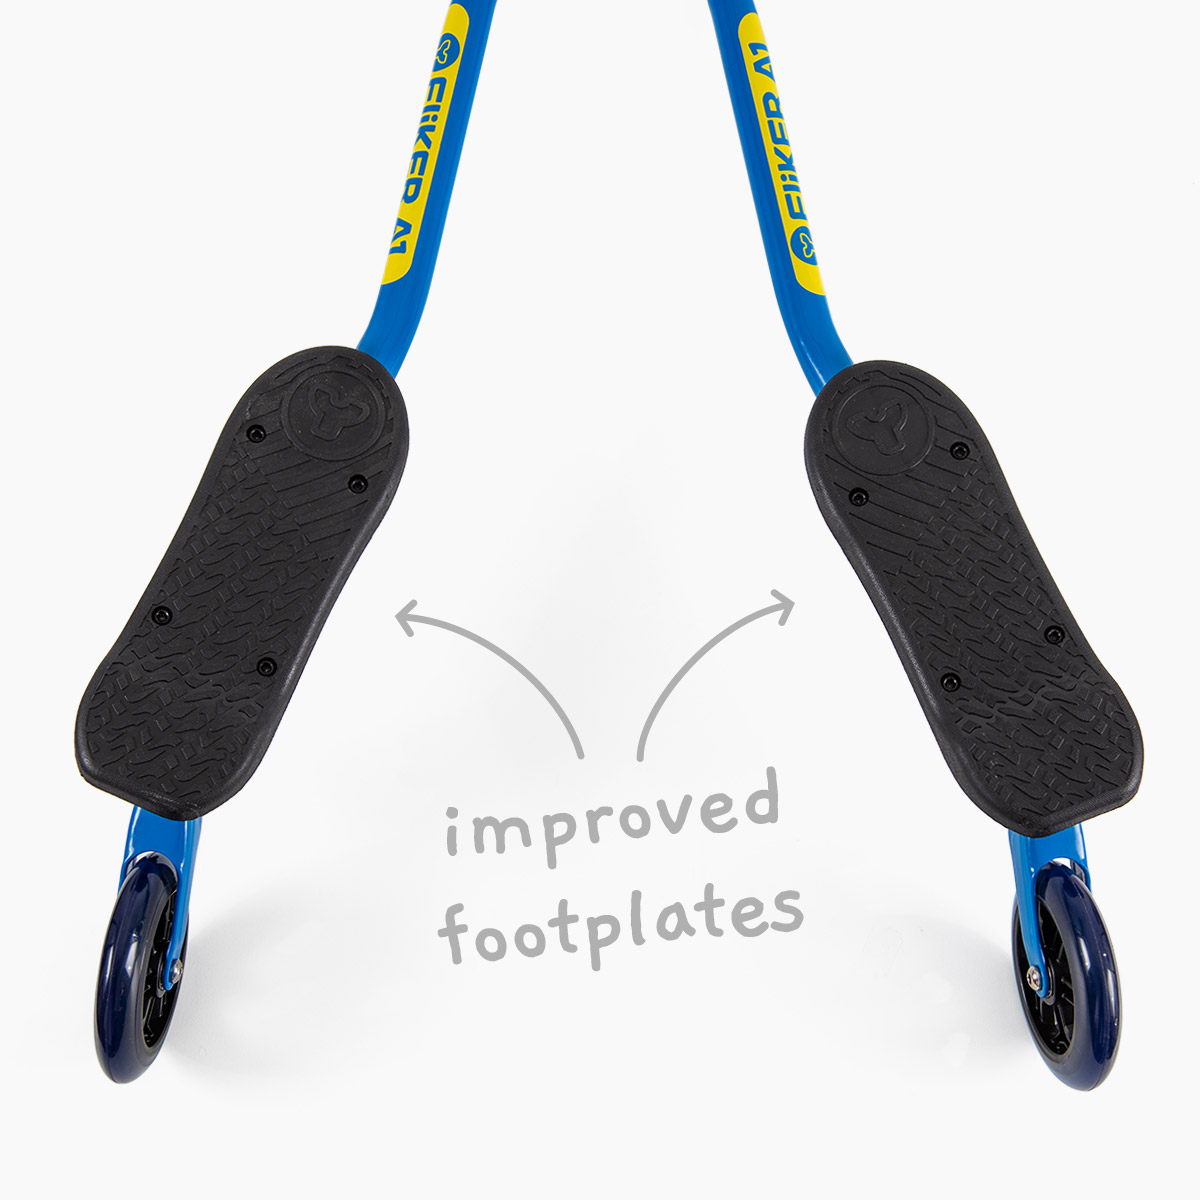 Improved footplates for maximum control